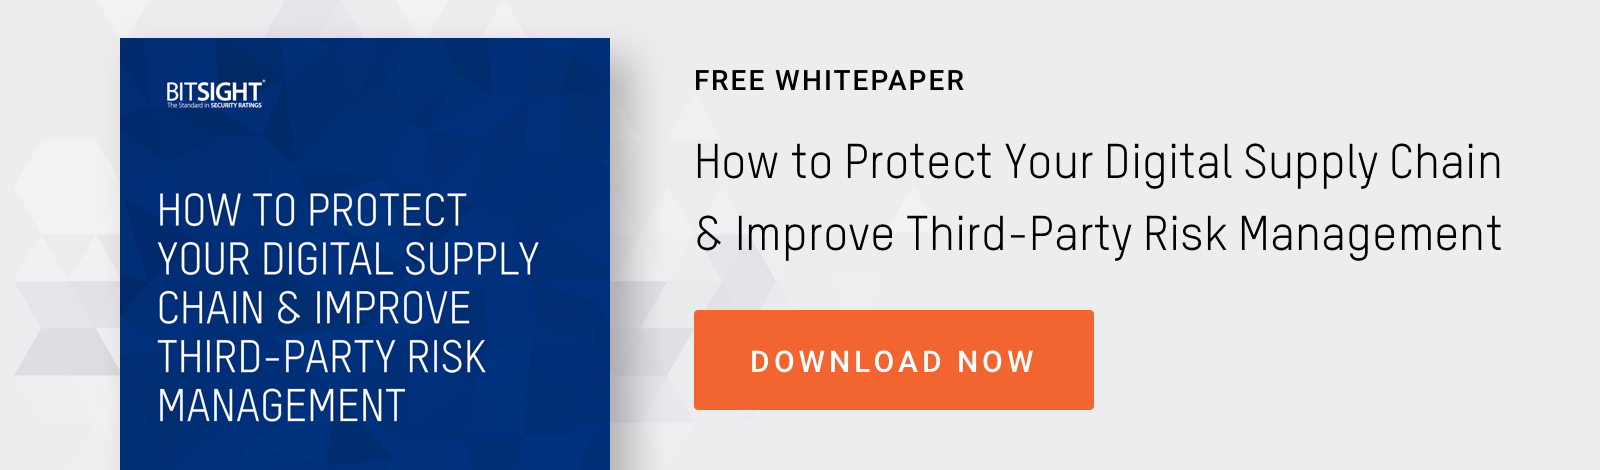 "Download ""How to Protect Your Digital Supply Chain"" Whitepaper"